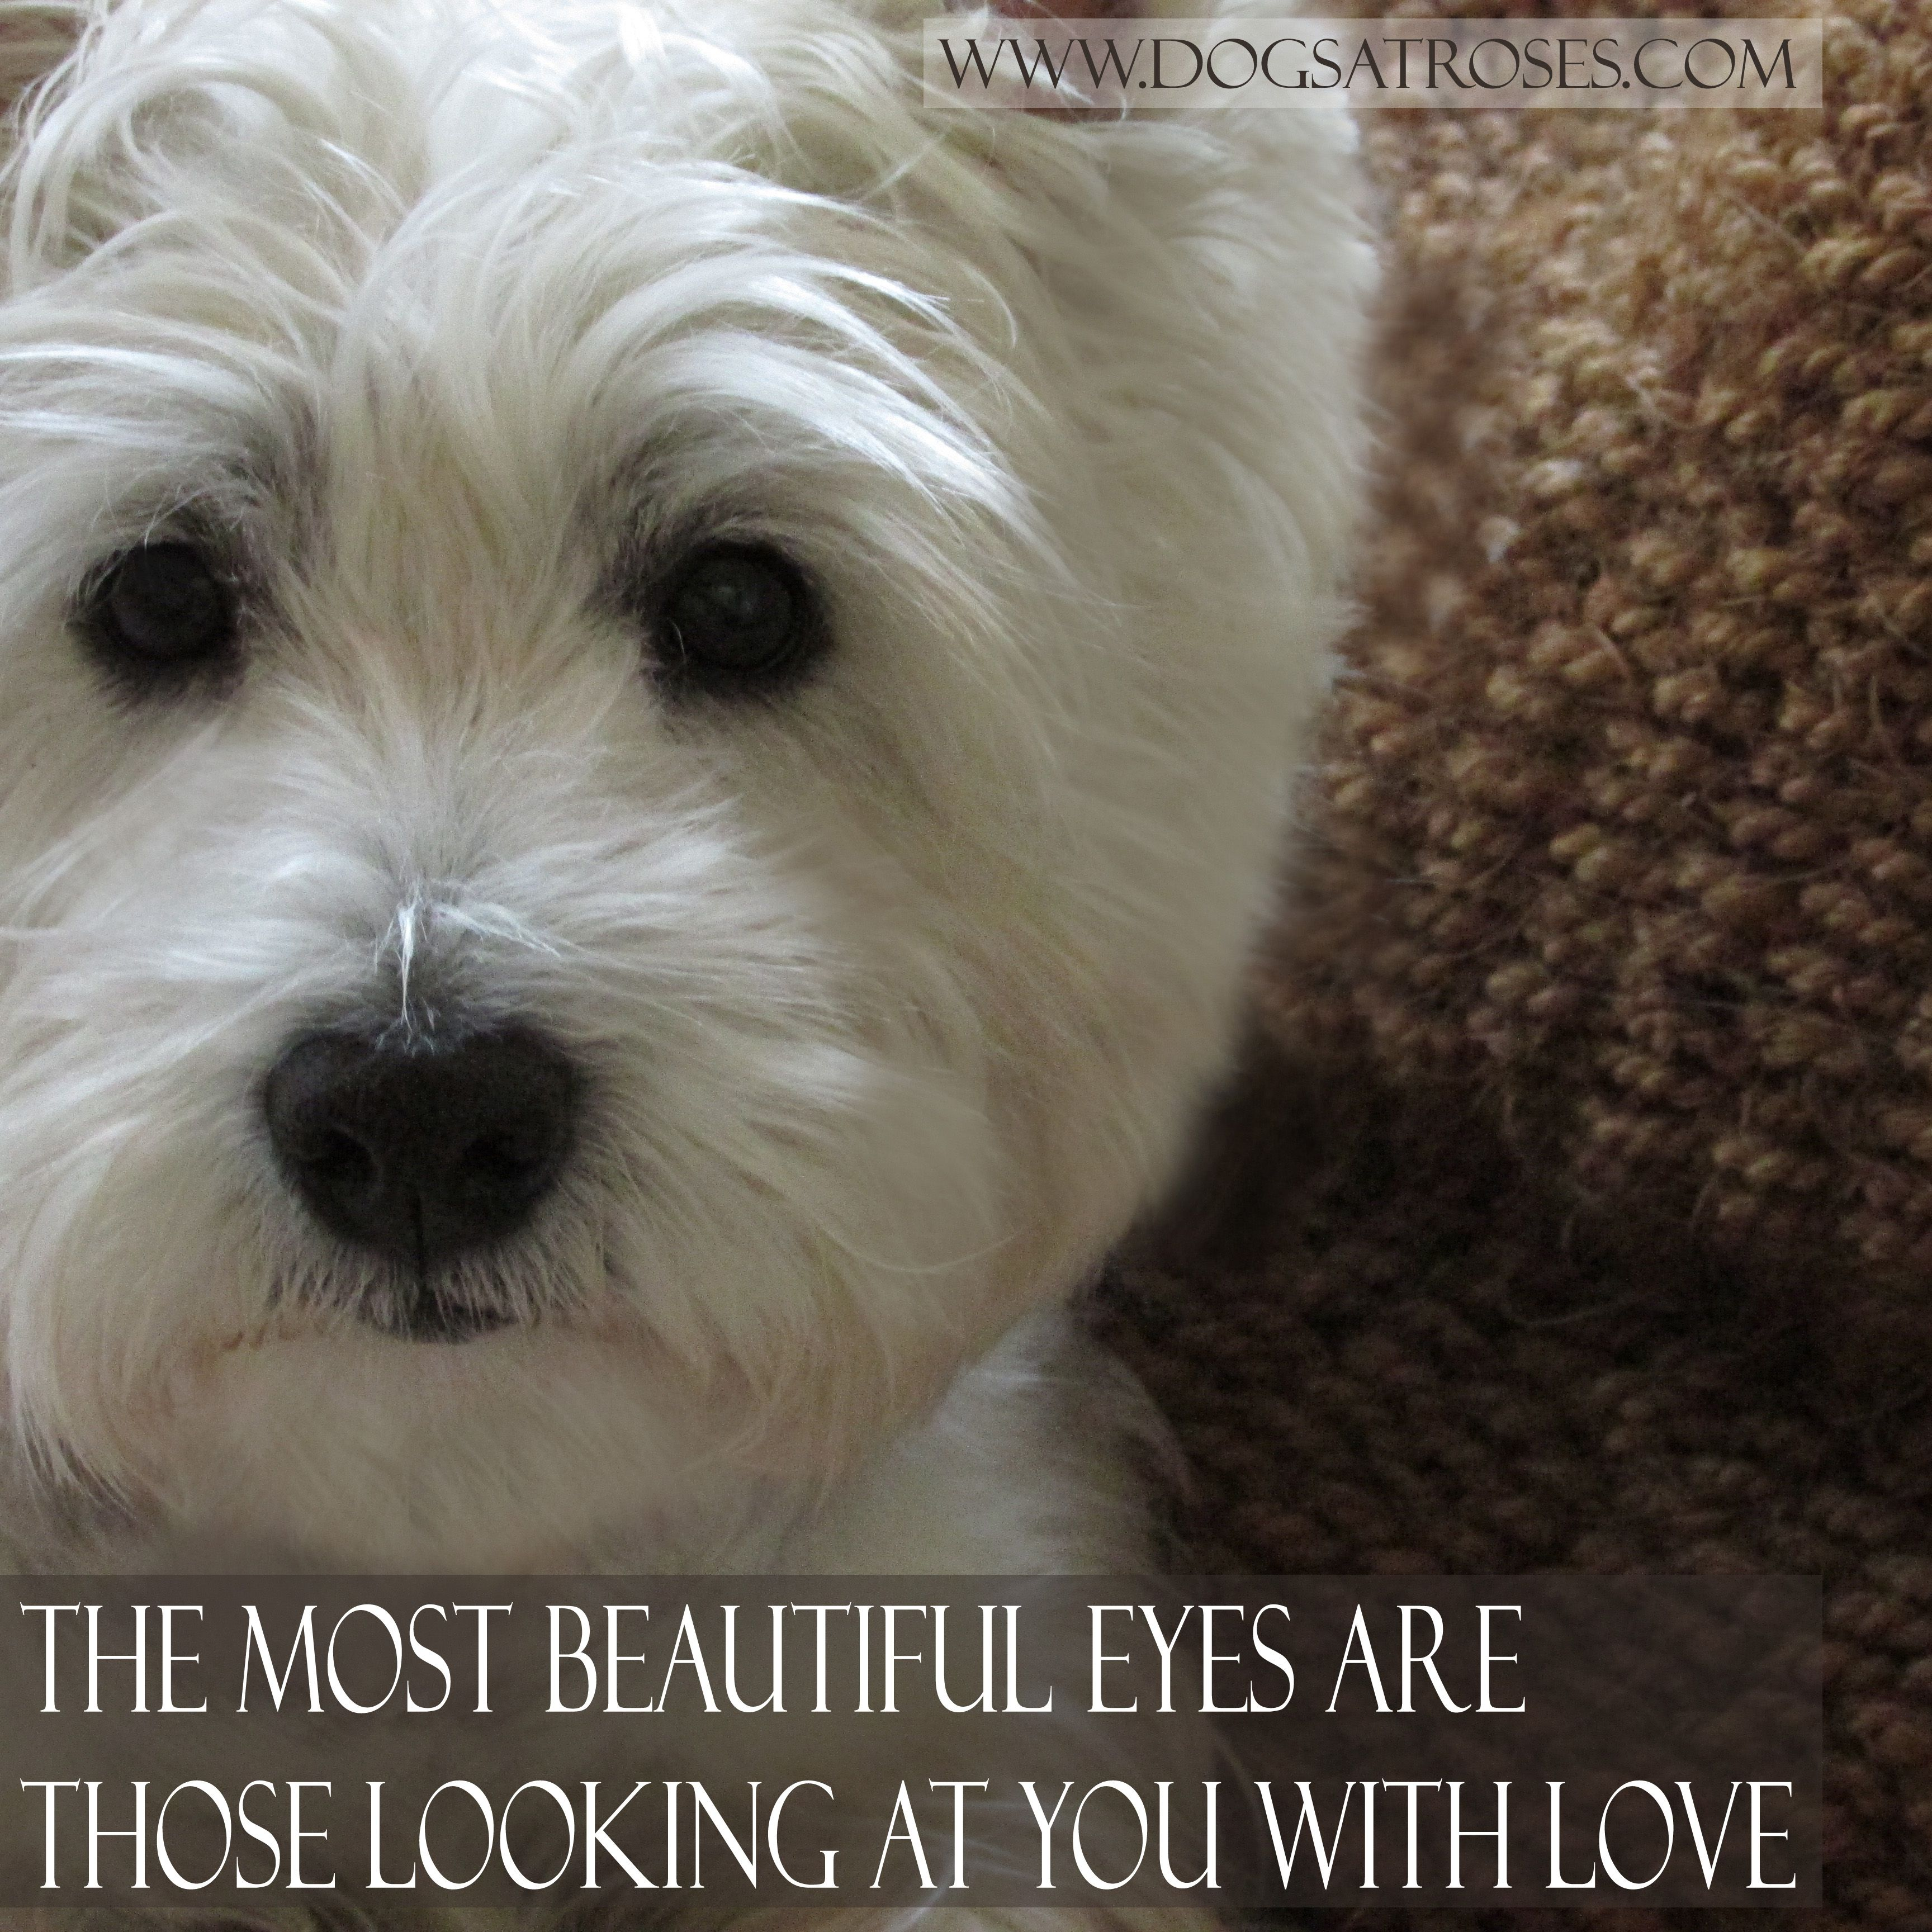 The Most Beautiful Eyes Are Those Looking At You With Love